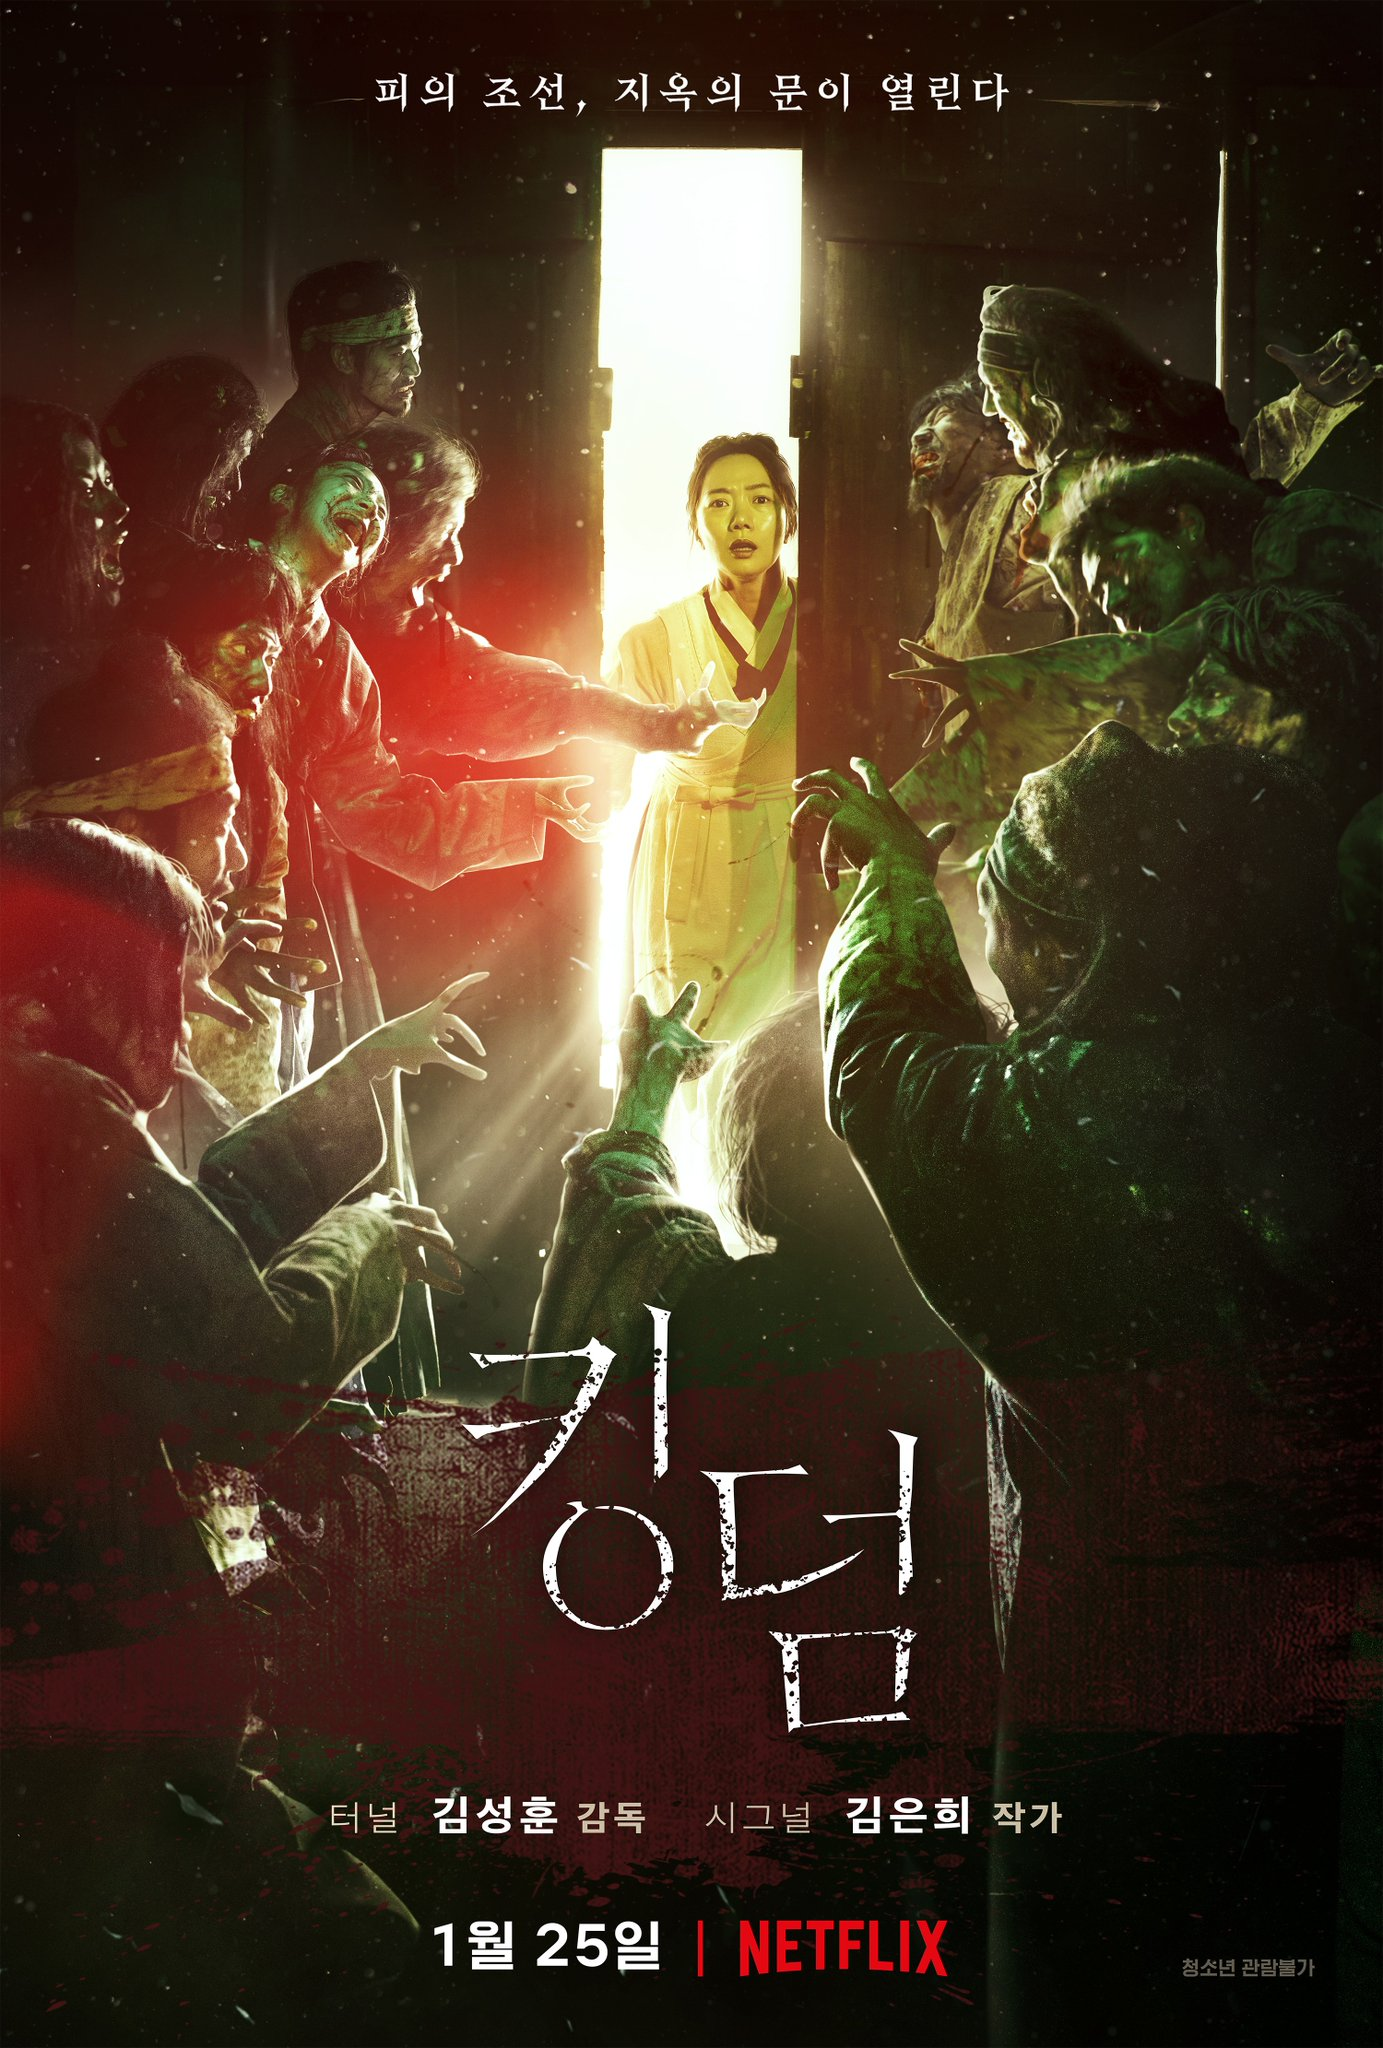 » Kingdom » Korean Drama